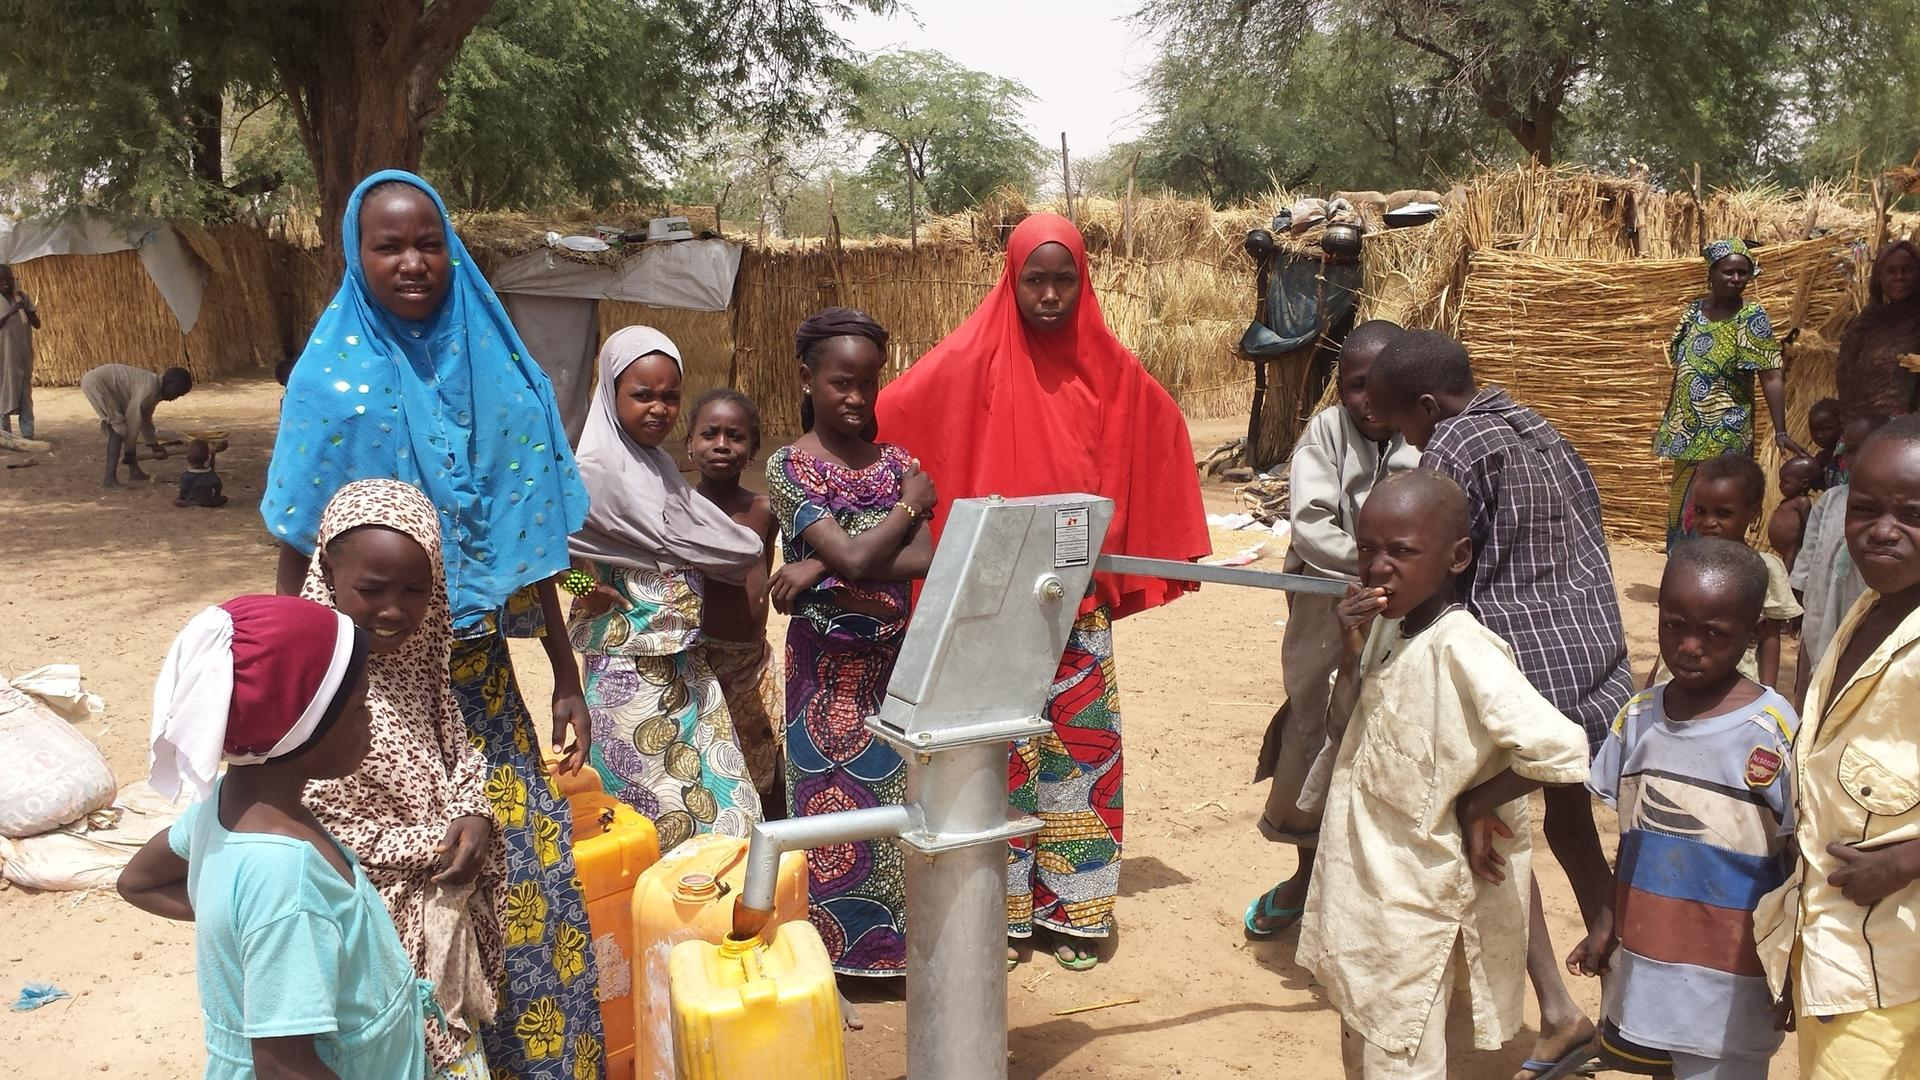 Children collect water at a tap in the Diffa region of Niger, which has seen a large influx of refugees from Nigeria.